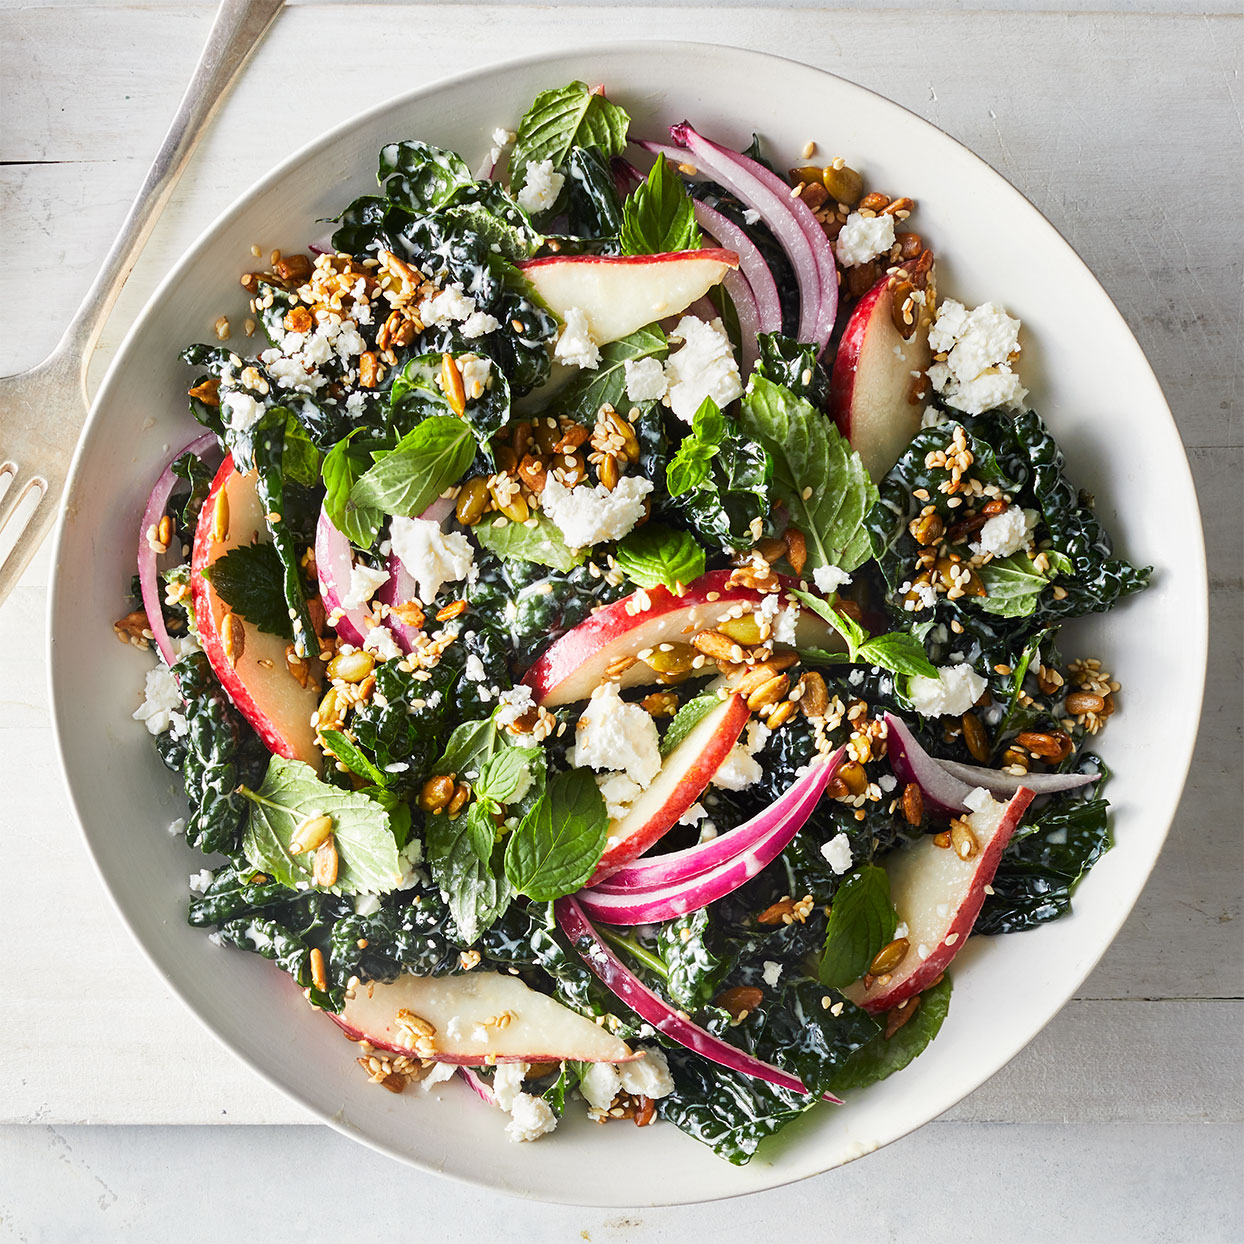 The crunchy seed topping is the perfect textural juxtaposition to a creamy dressing, soft pears and tender massaged kale salad. Tossing it all with mint, feta and red onion gives it a Middle Eastern flair. Source: EatingWell Magazine, January/February 2020